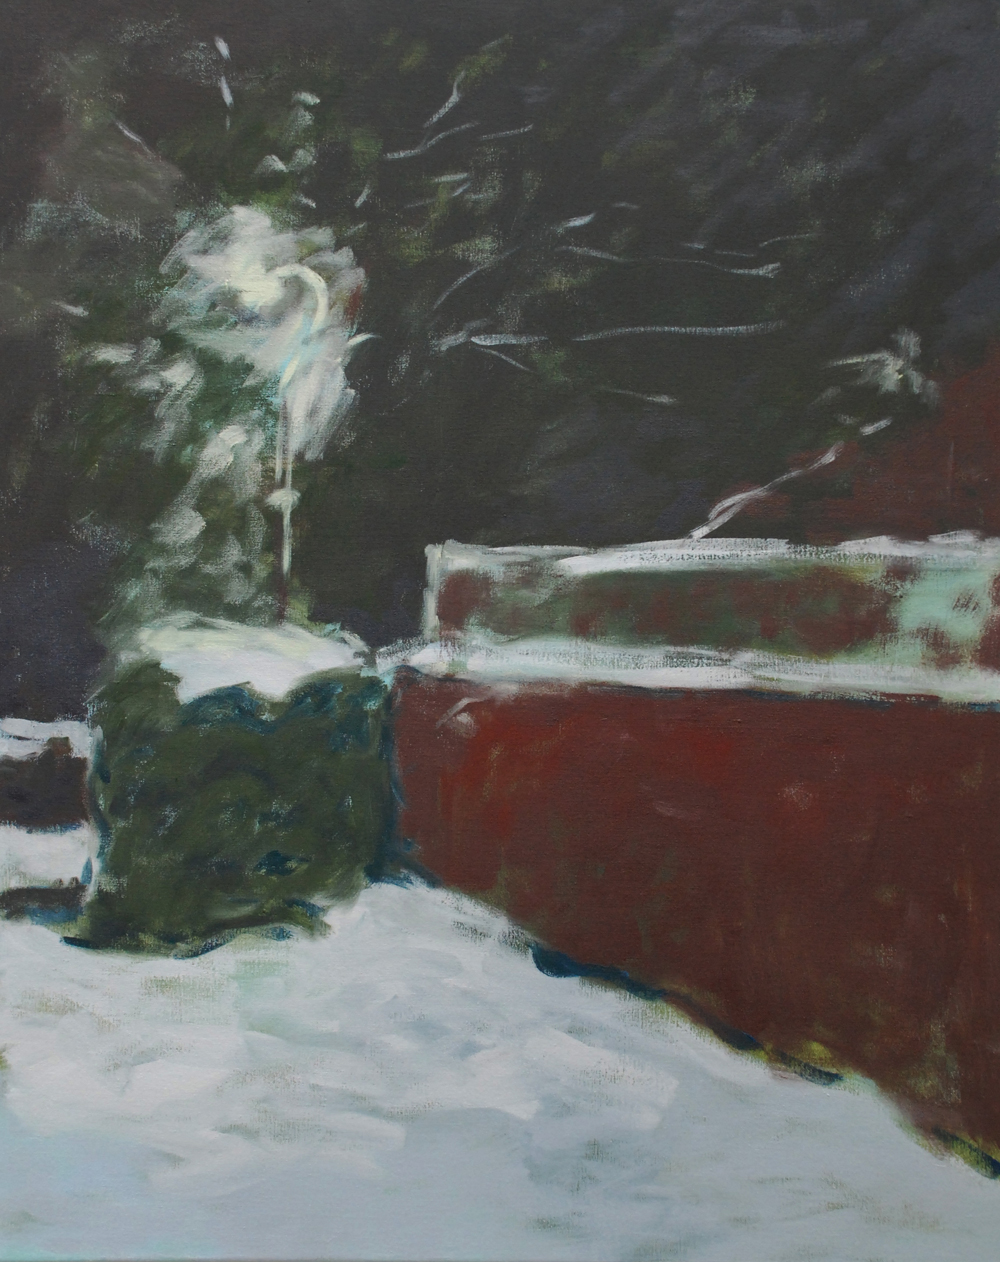 Night snow, 2015